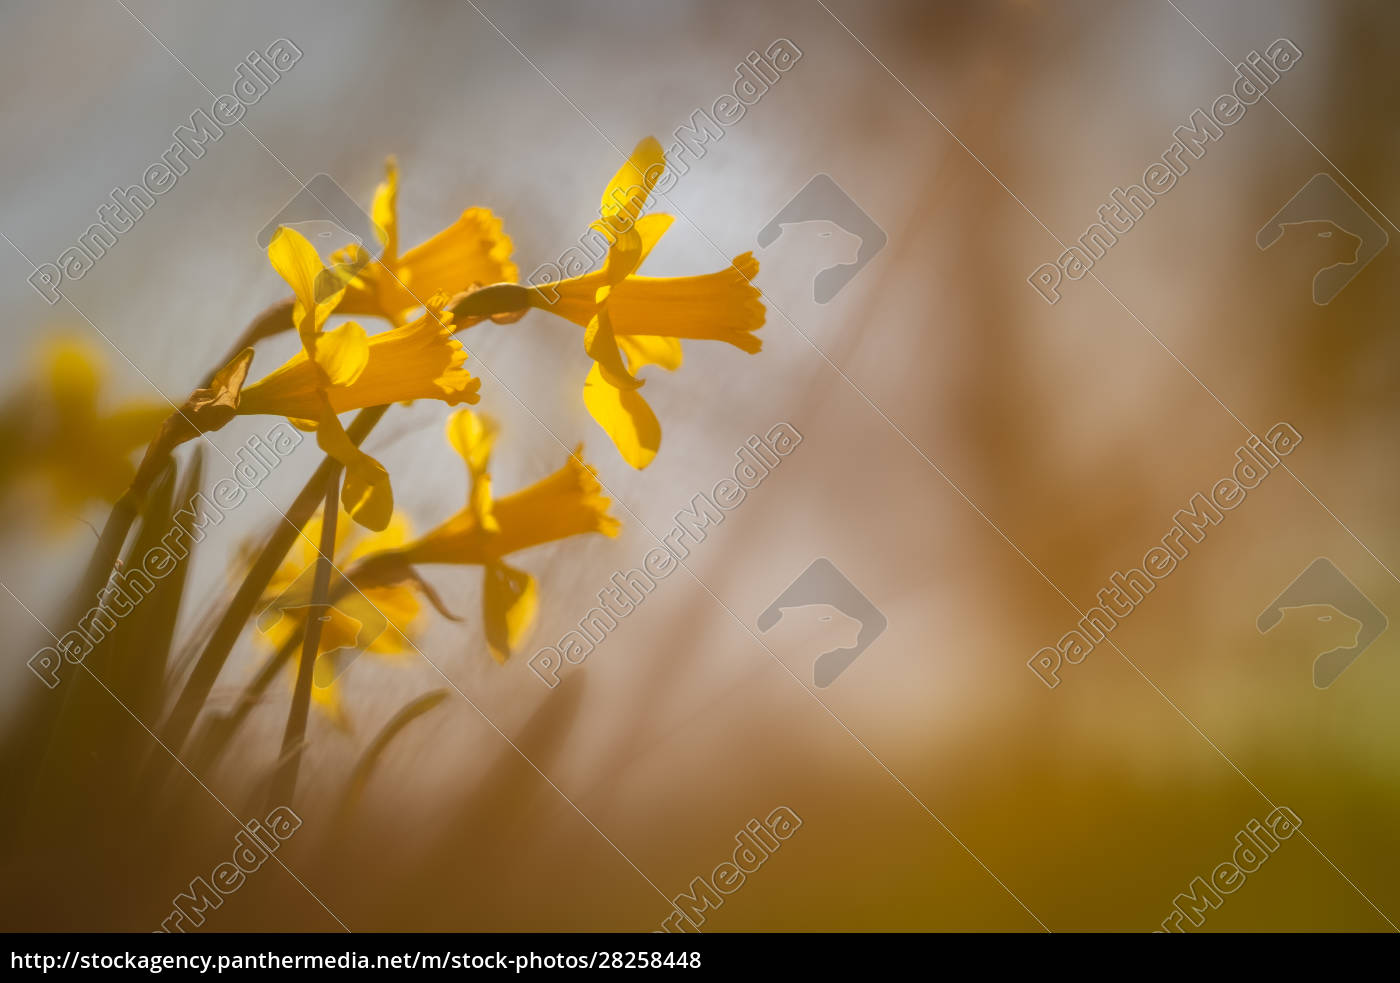 yellow, daffodil, blossom, with, blurred, background - 28258448